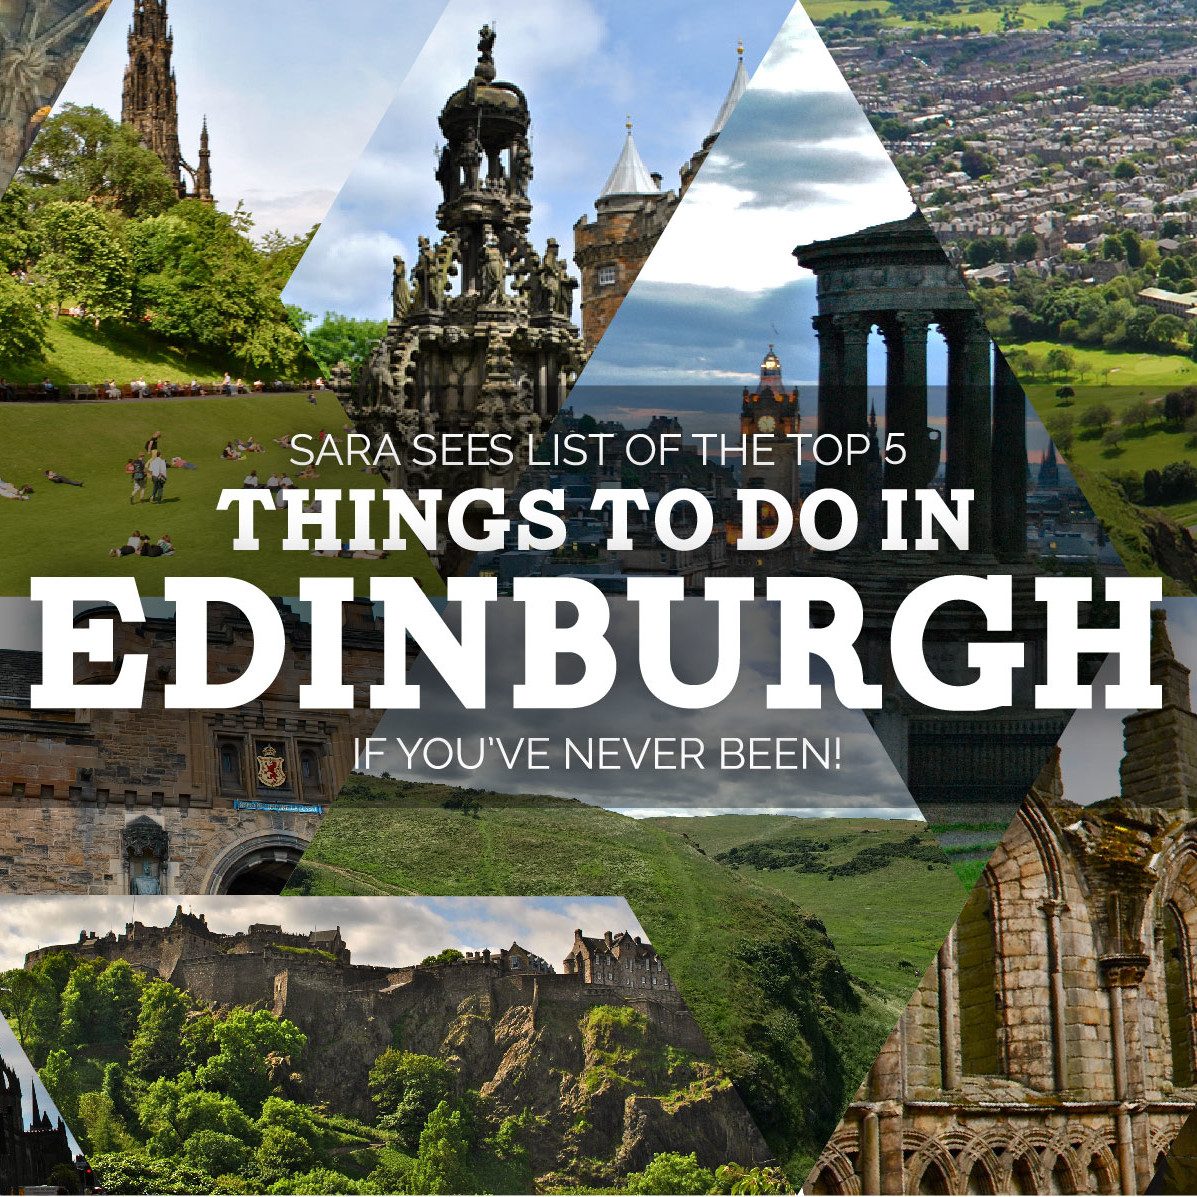 Places To Visit Over A Weekend: Top 5 Things To Do In Edinburgh (if You've Never Been